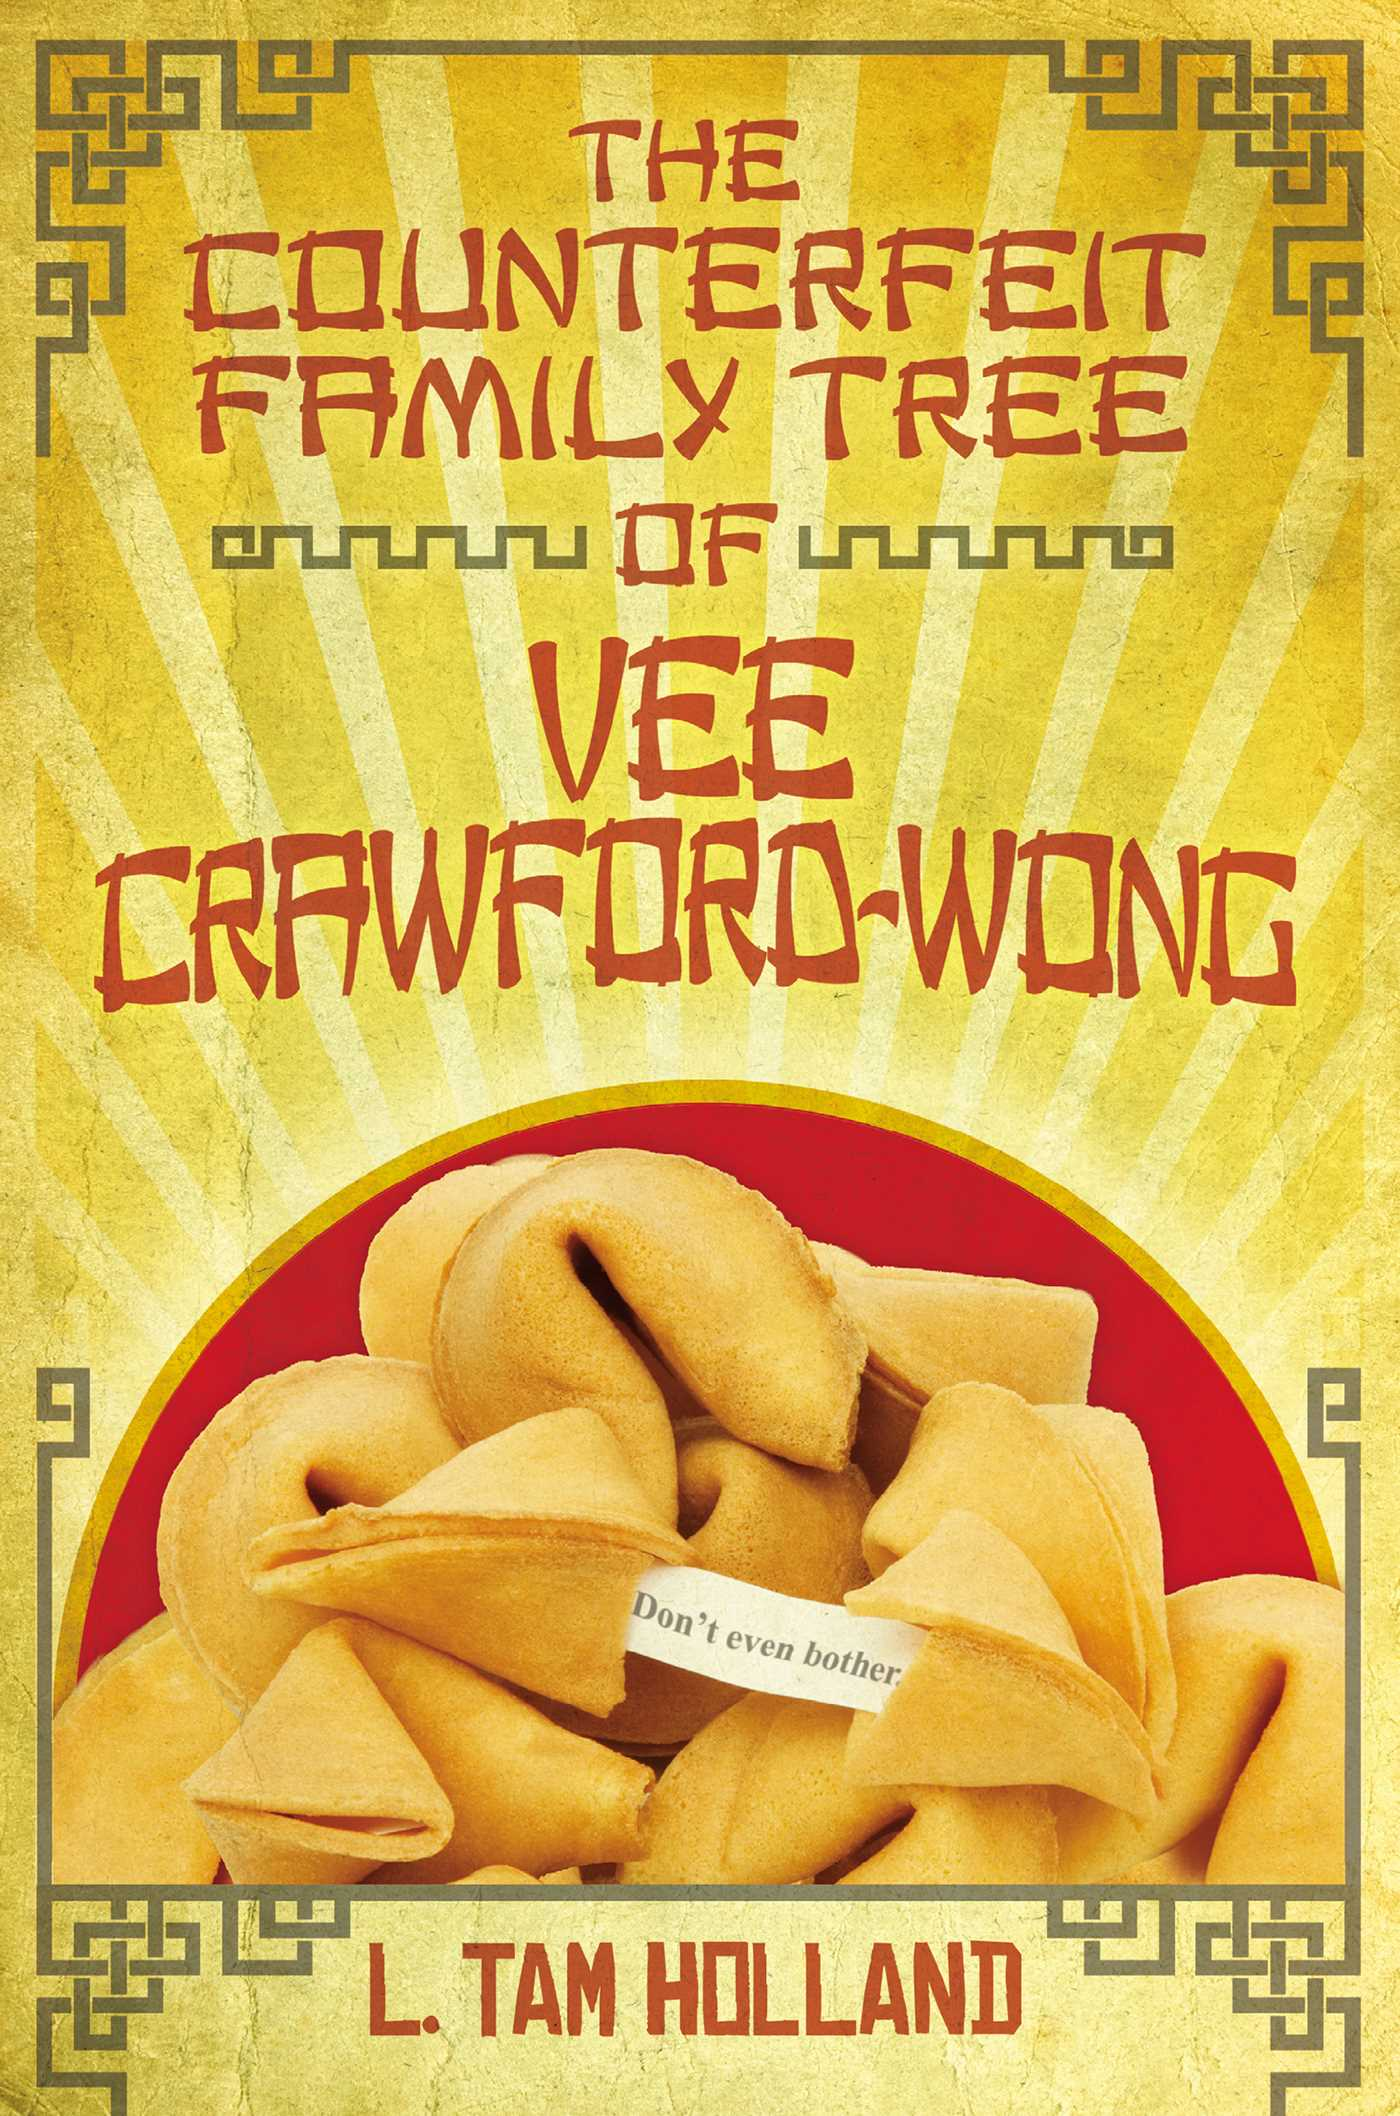 The counterfeit family tree of vee crawford wong 9781442412651 hr